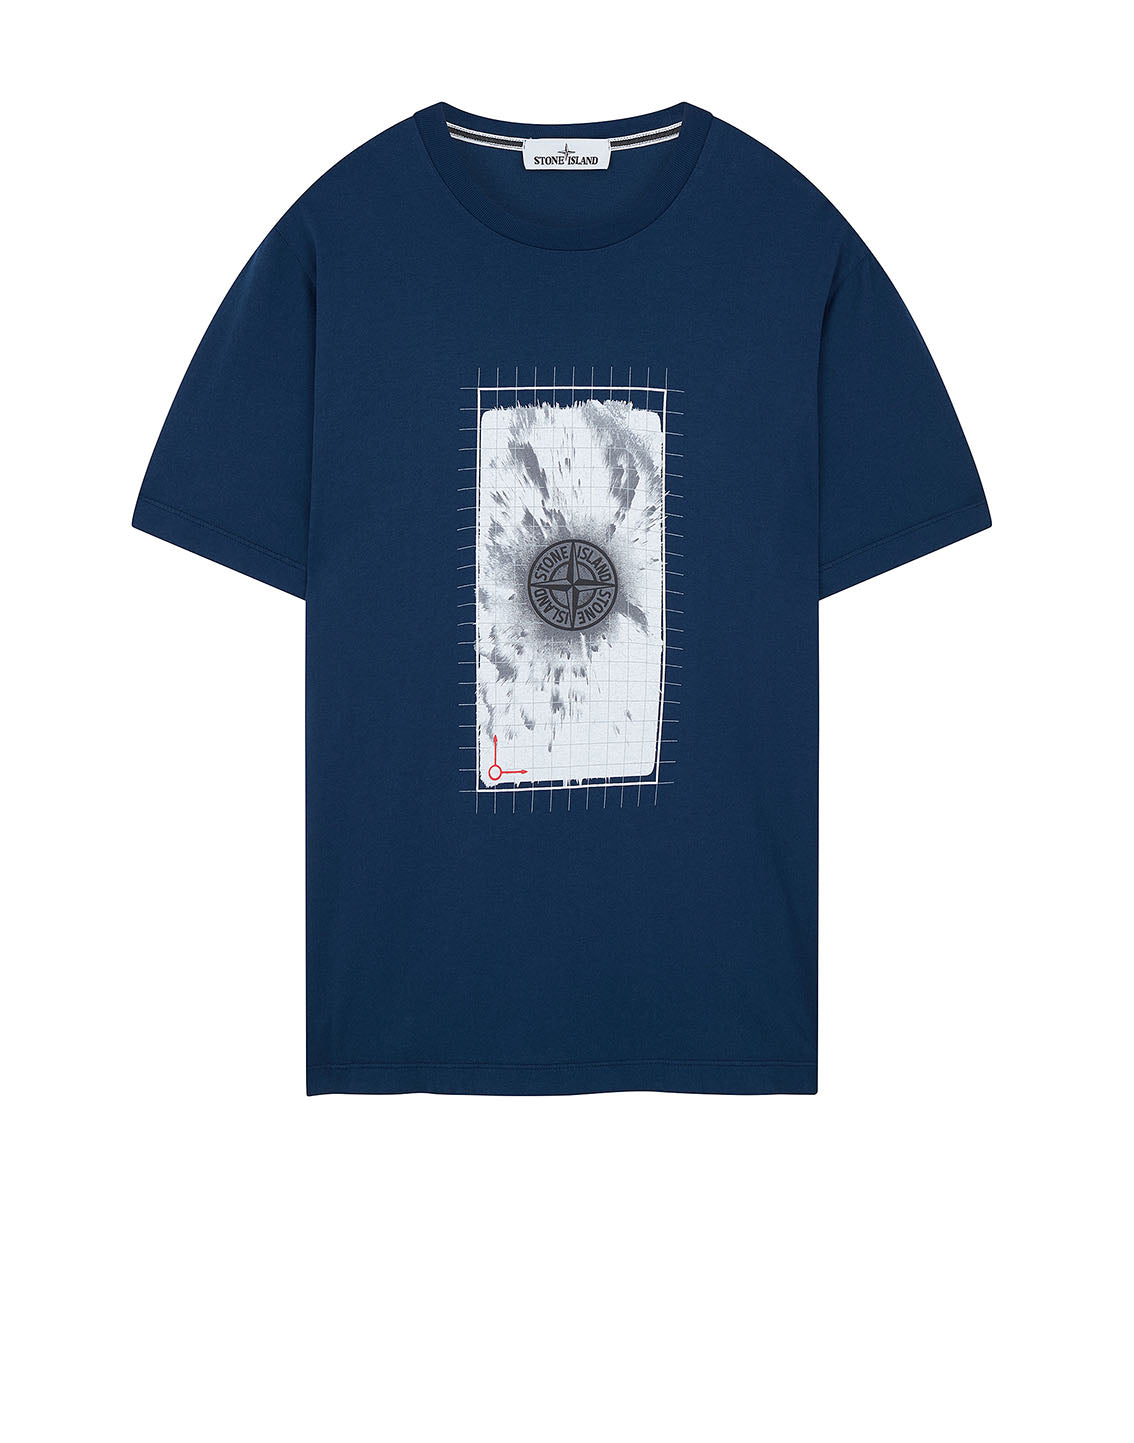 2NS87 'GRAPHIC FIVE' T-Shirt in Blue